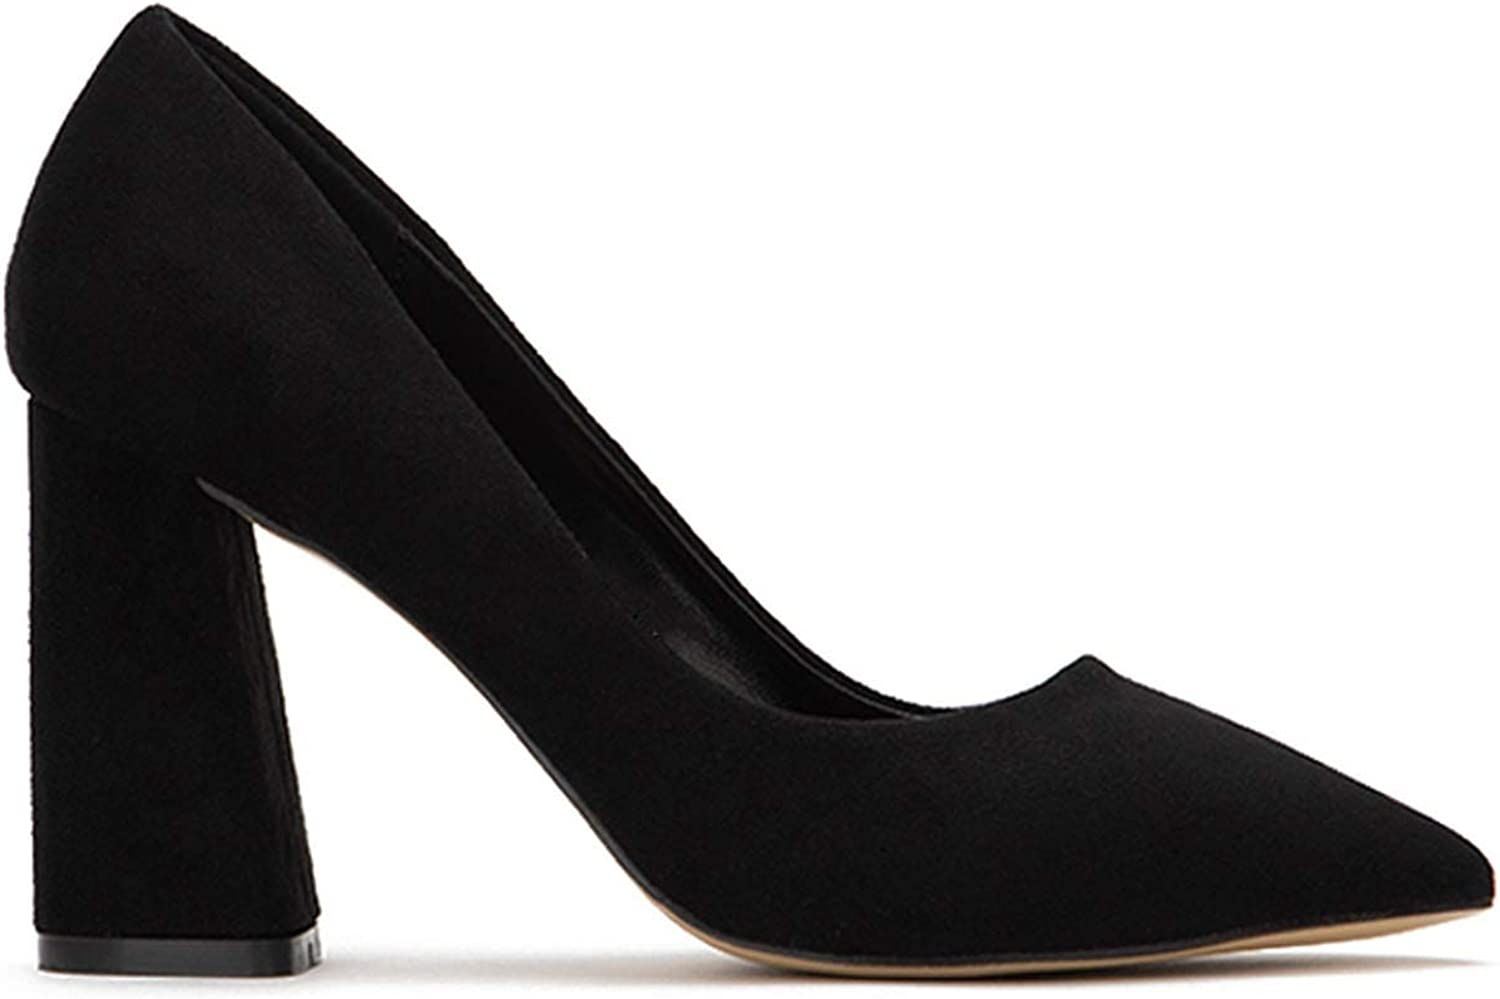 Wedding Formal Party Simple Classic Pump Pointed Toe Suede Comfortable Shoes Kaicran Womens Chunky Block High Heel